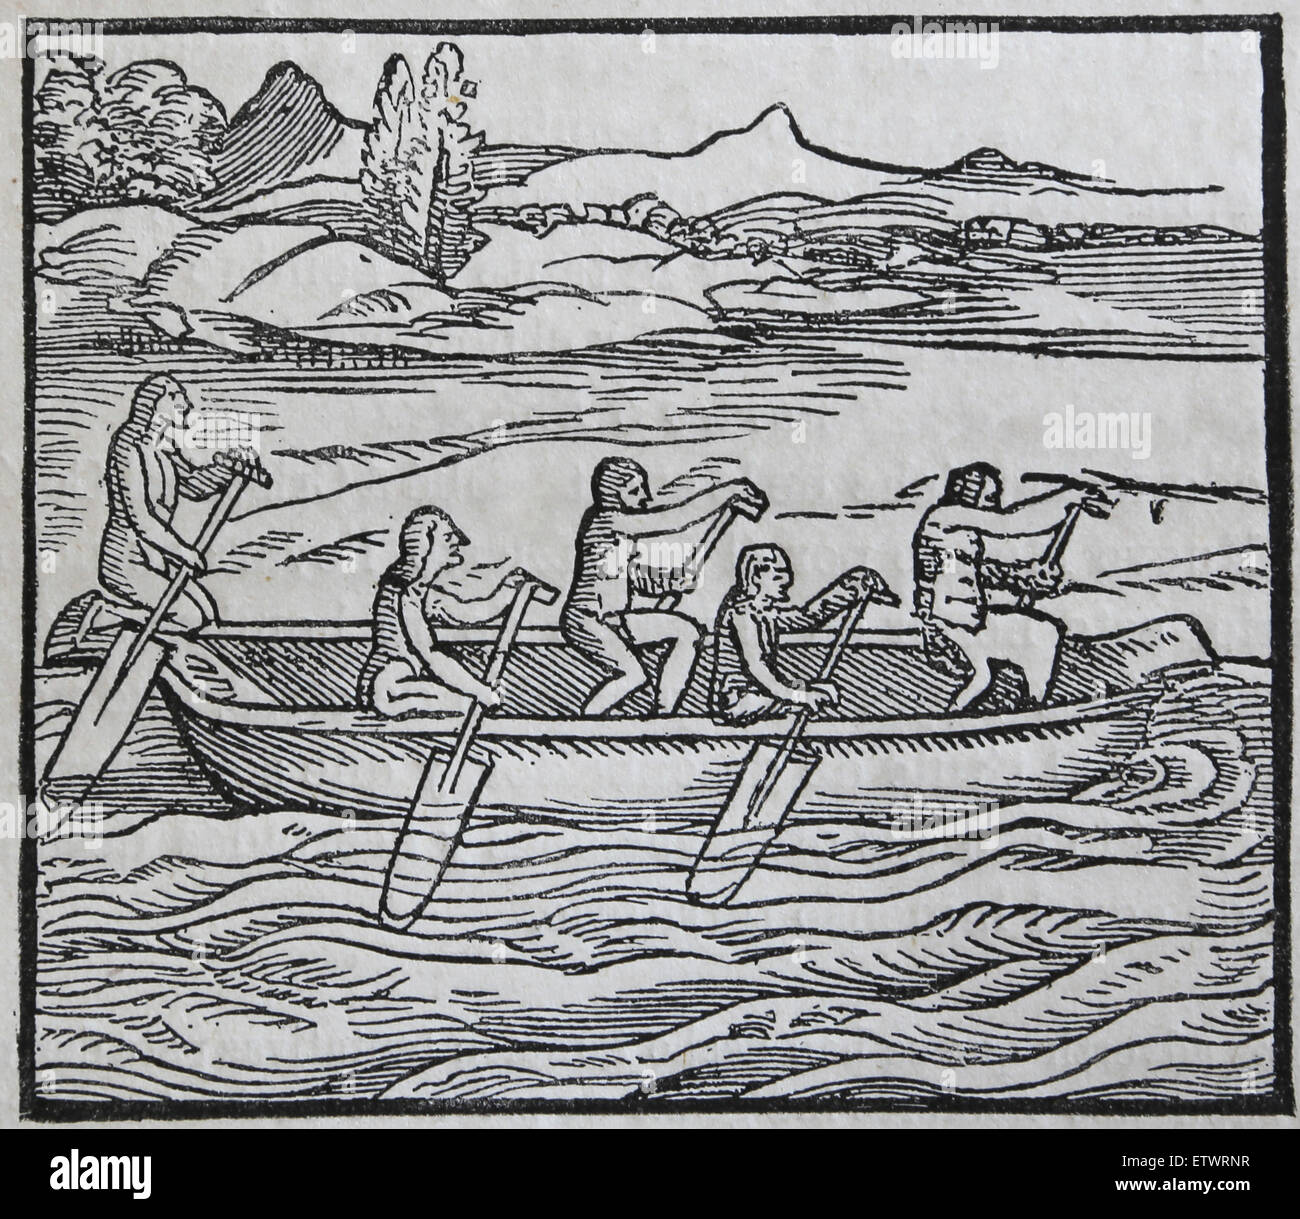 America. Indian canoe of Paria country. Wood engraving. 16th century. - Stock Image